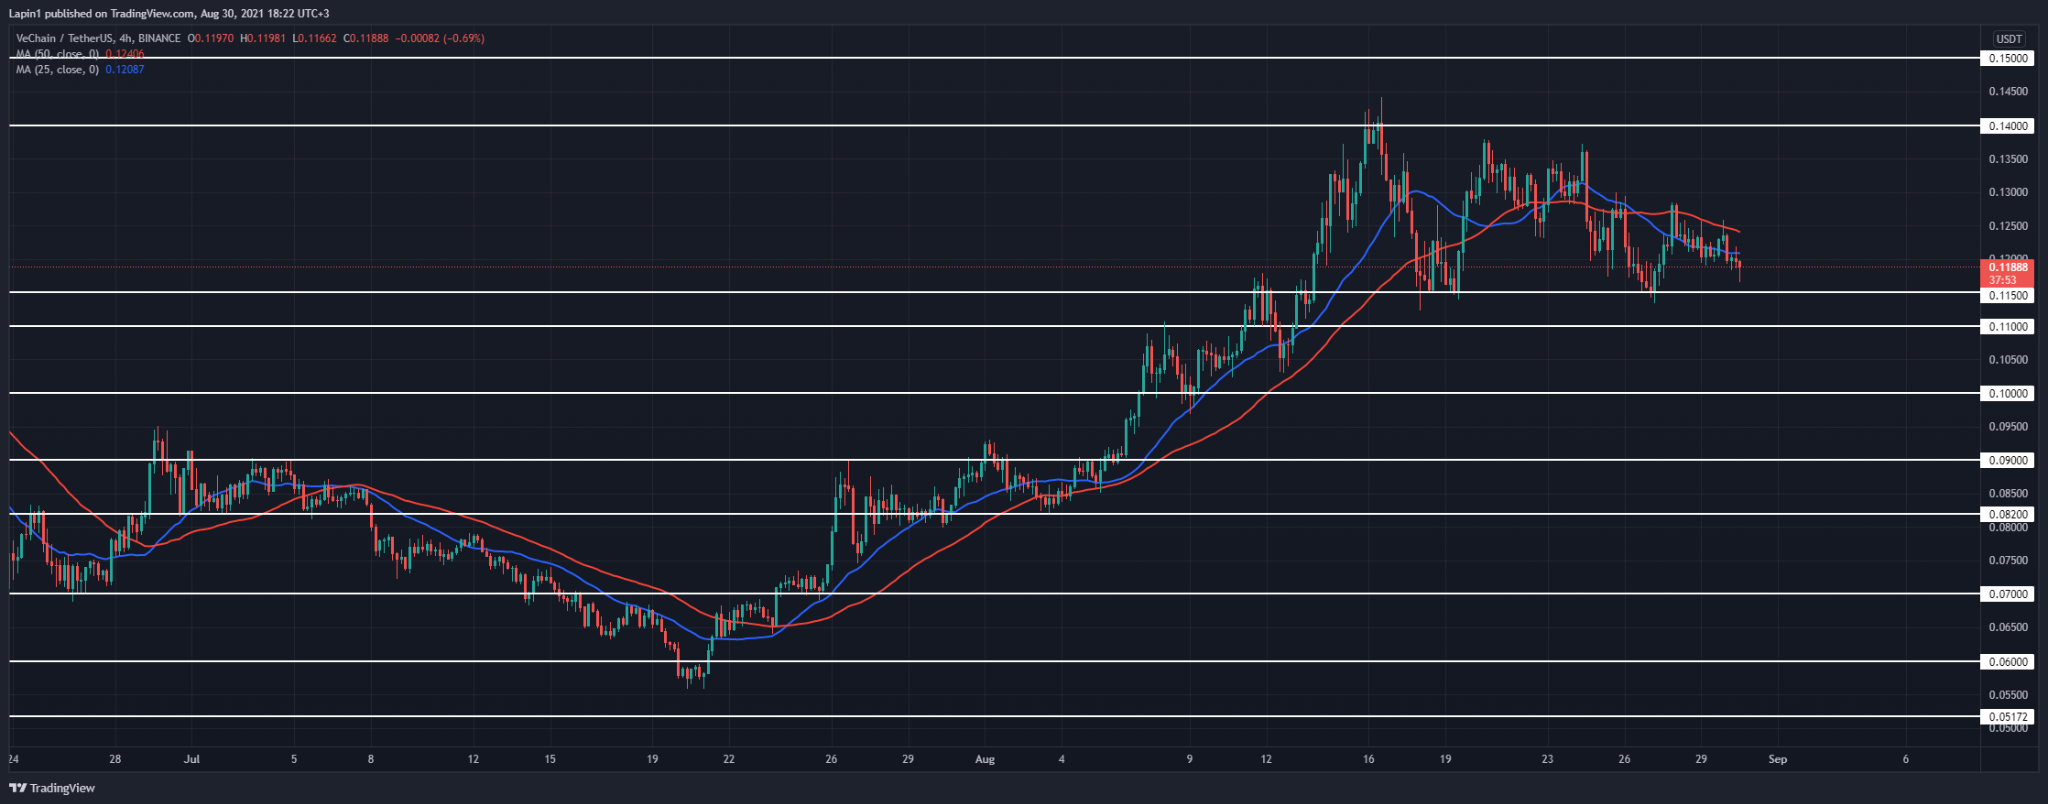 VeChain Price Analysis: VET continues to decline, set to retest $0.115 again?